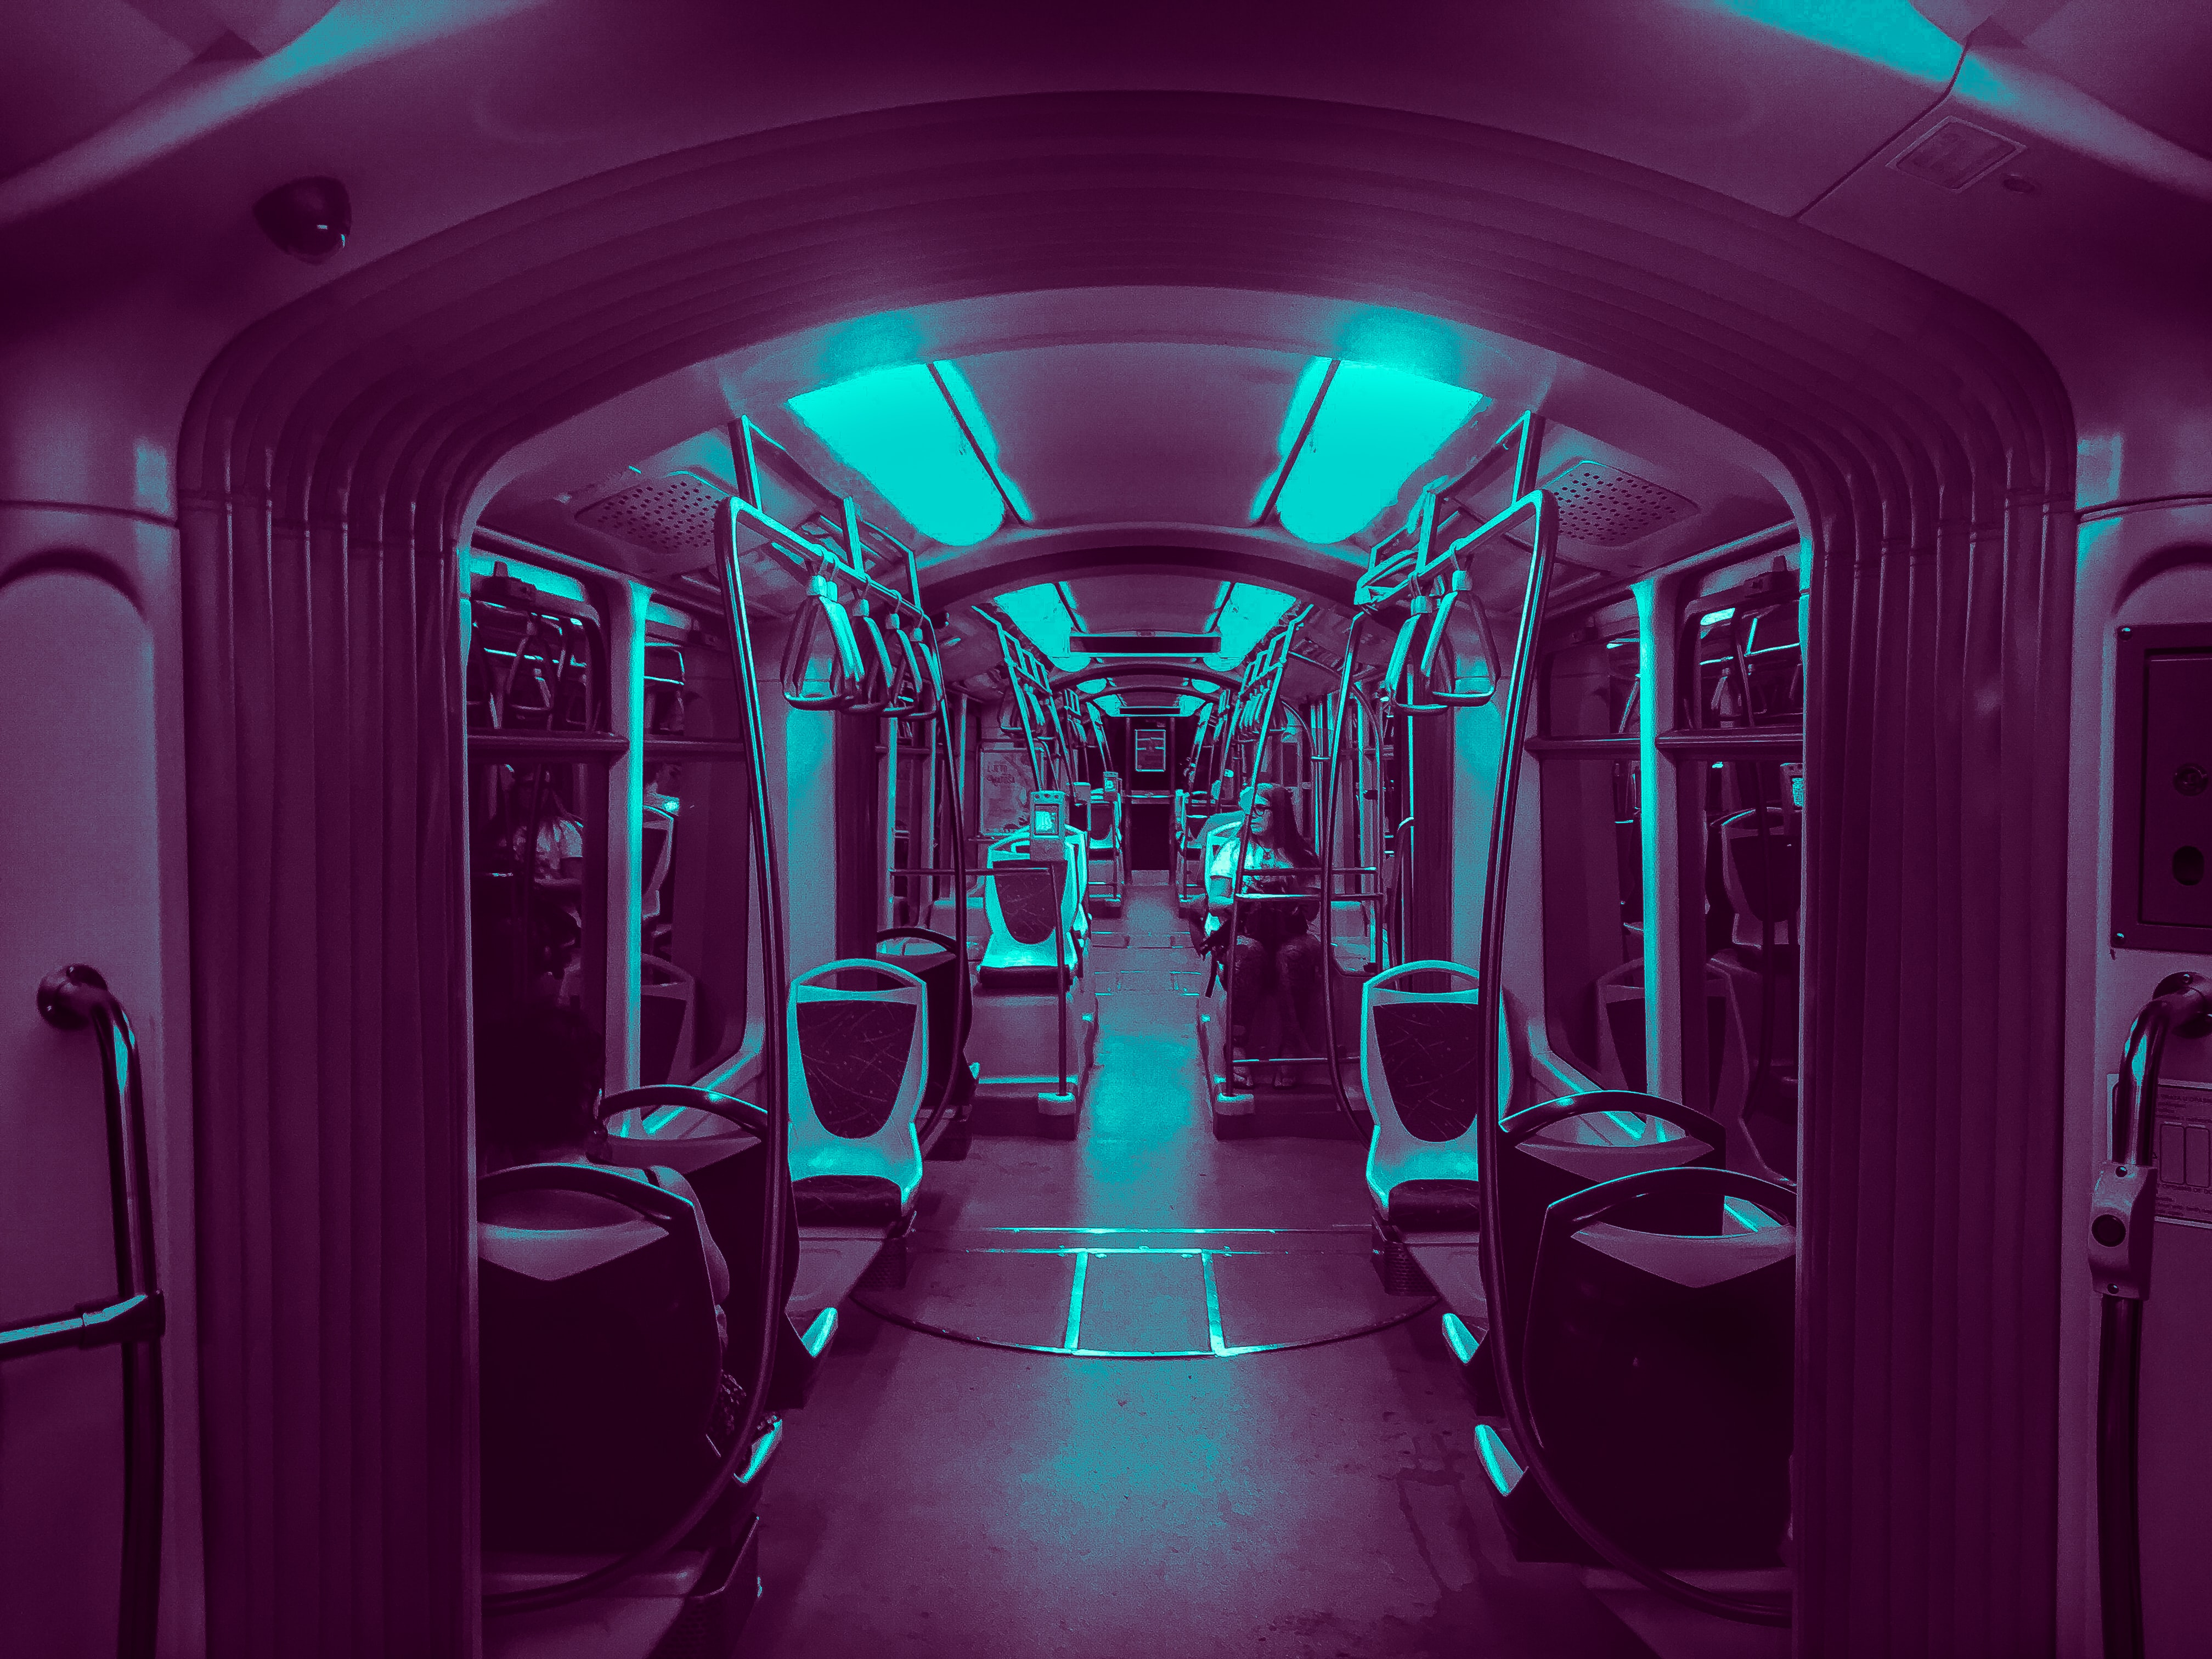 interior photo of train with lights